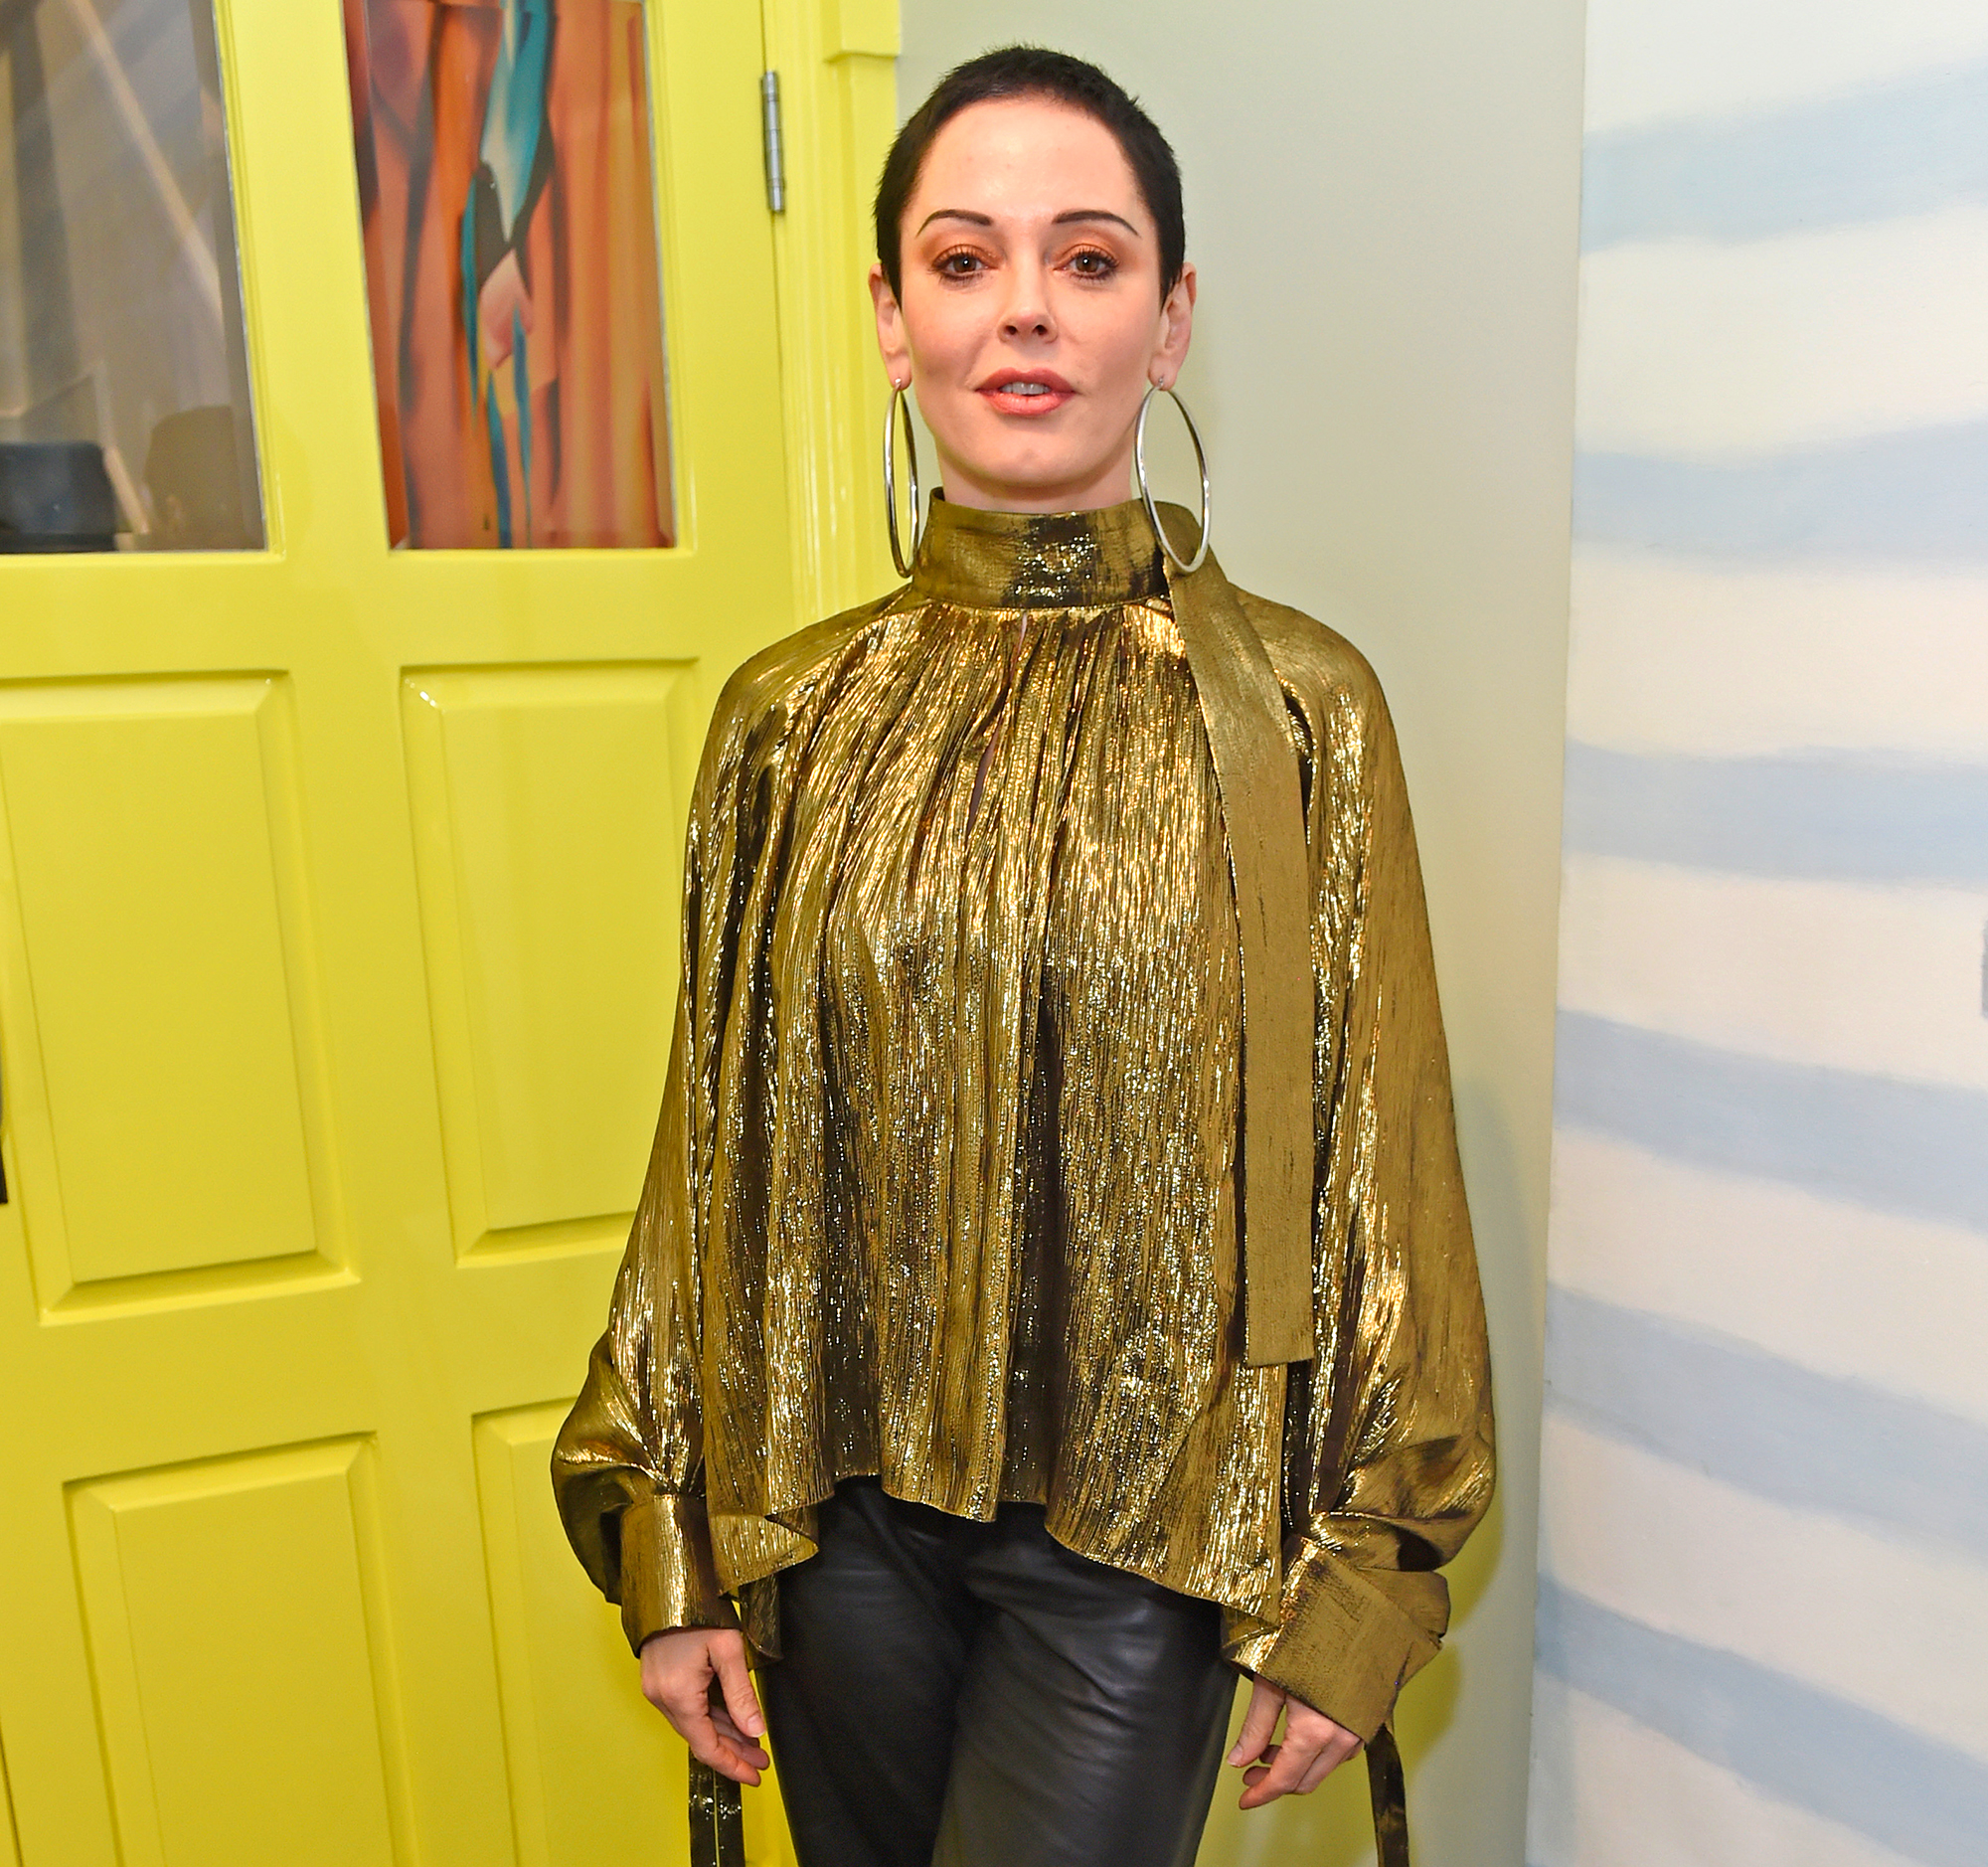 Actress Rose McGowan indicted on cocaine charge in Virginia